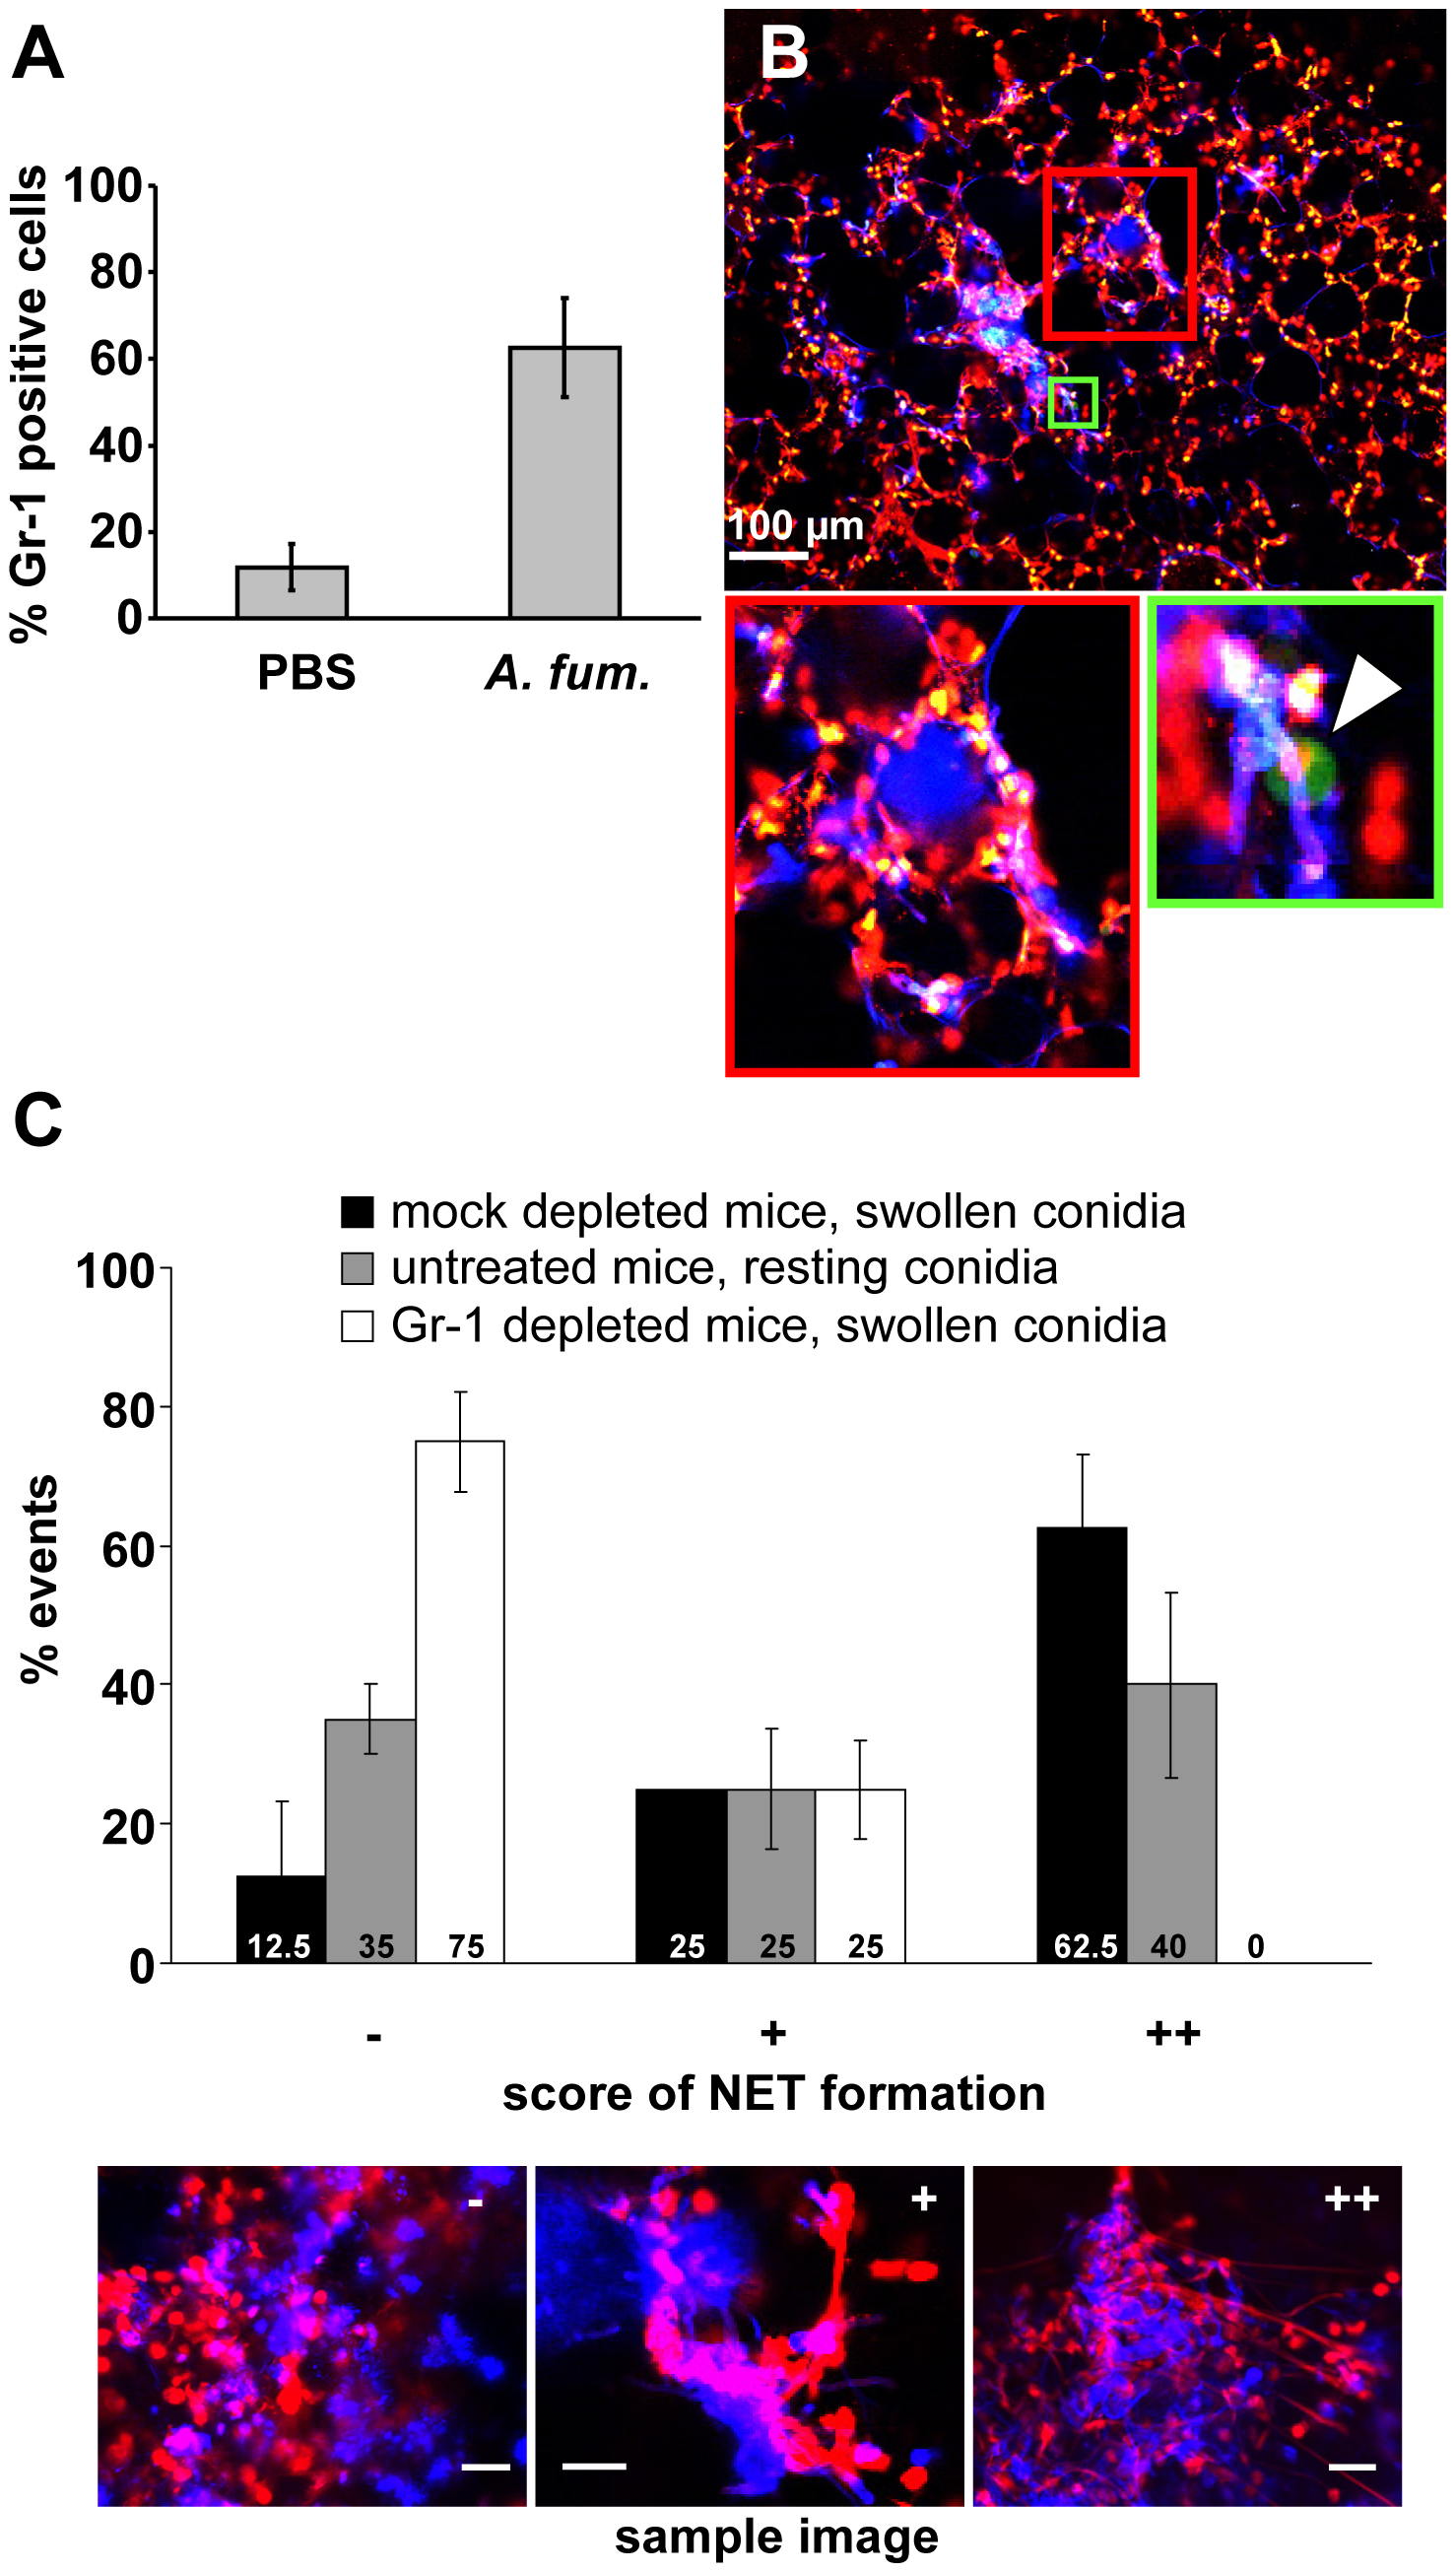 NET formation <i>in vivo</i> is dependent on the presence of newly immigrating neutrophils.